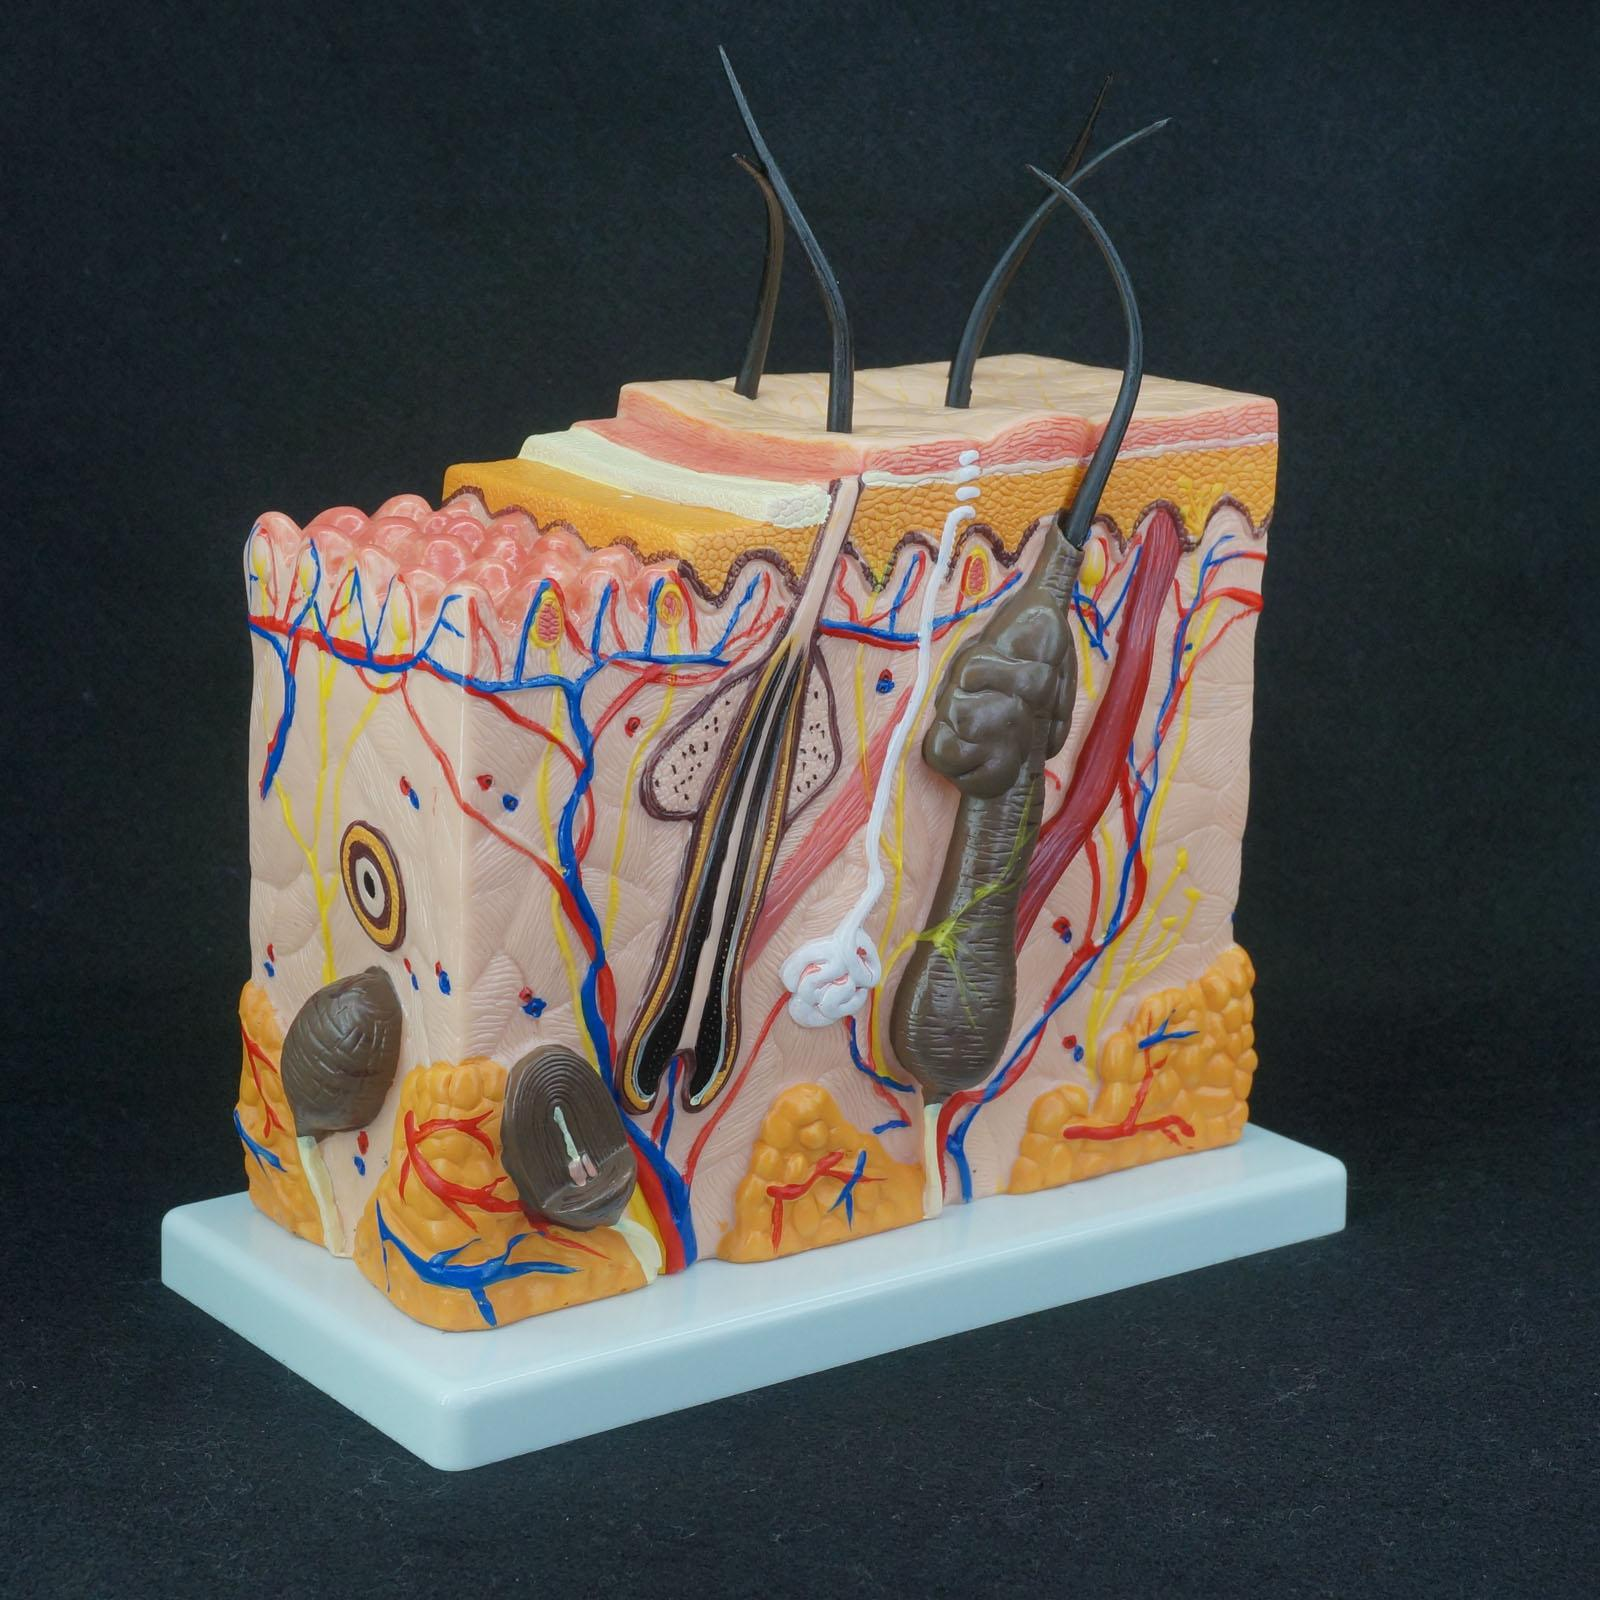 70X Life Size Anatomical Human Skin Block Model Medical Dermatology Anatomy 70x life size anatomical human skin block model medical dermatology anatomy